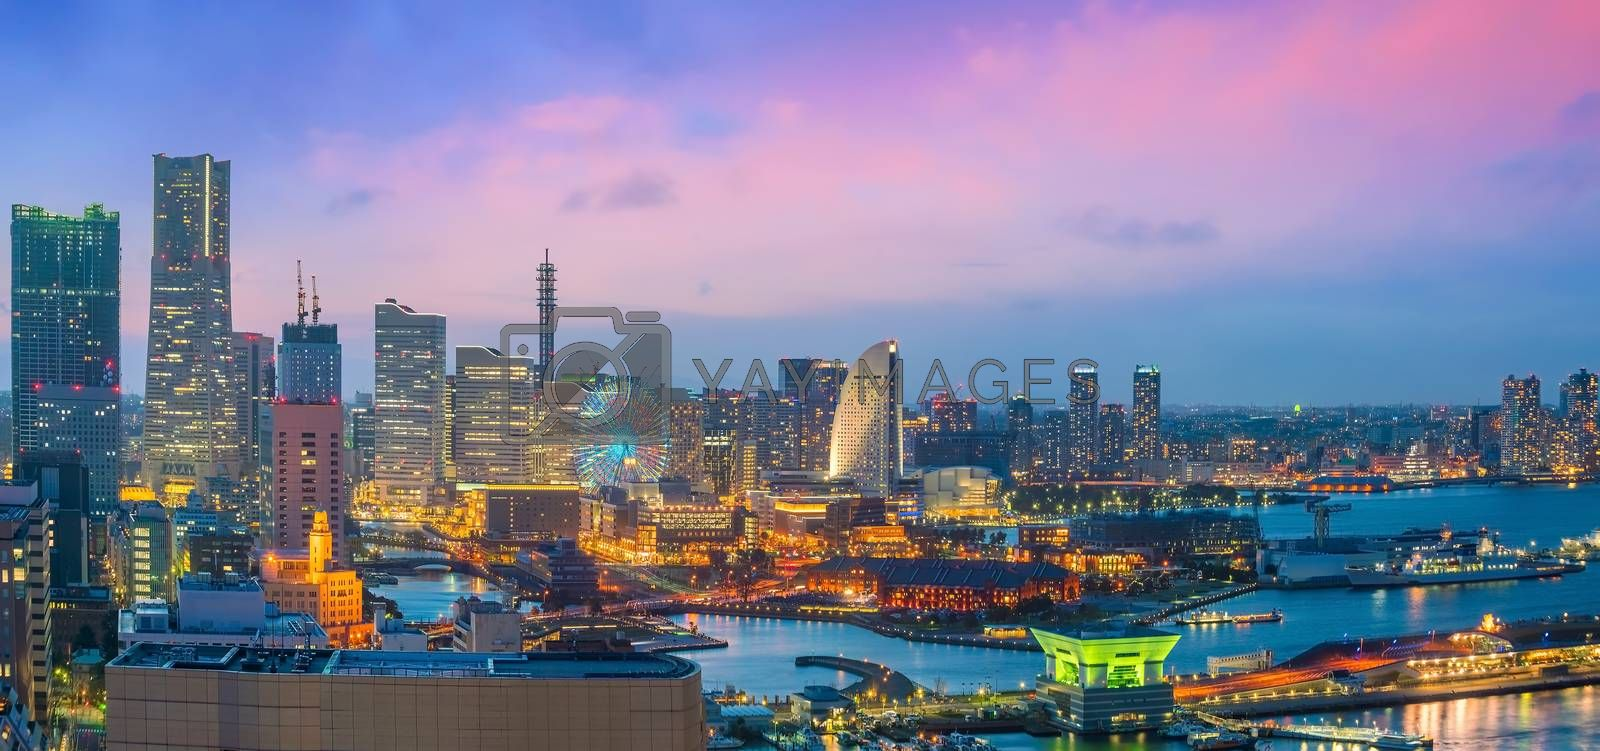 Royalty free image of Yokohama city skyline from top view at sunset by f11photo